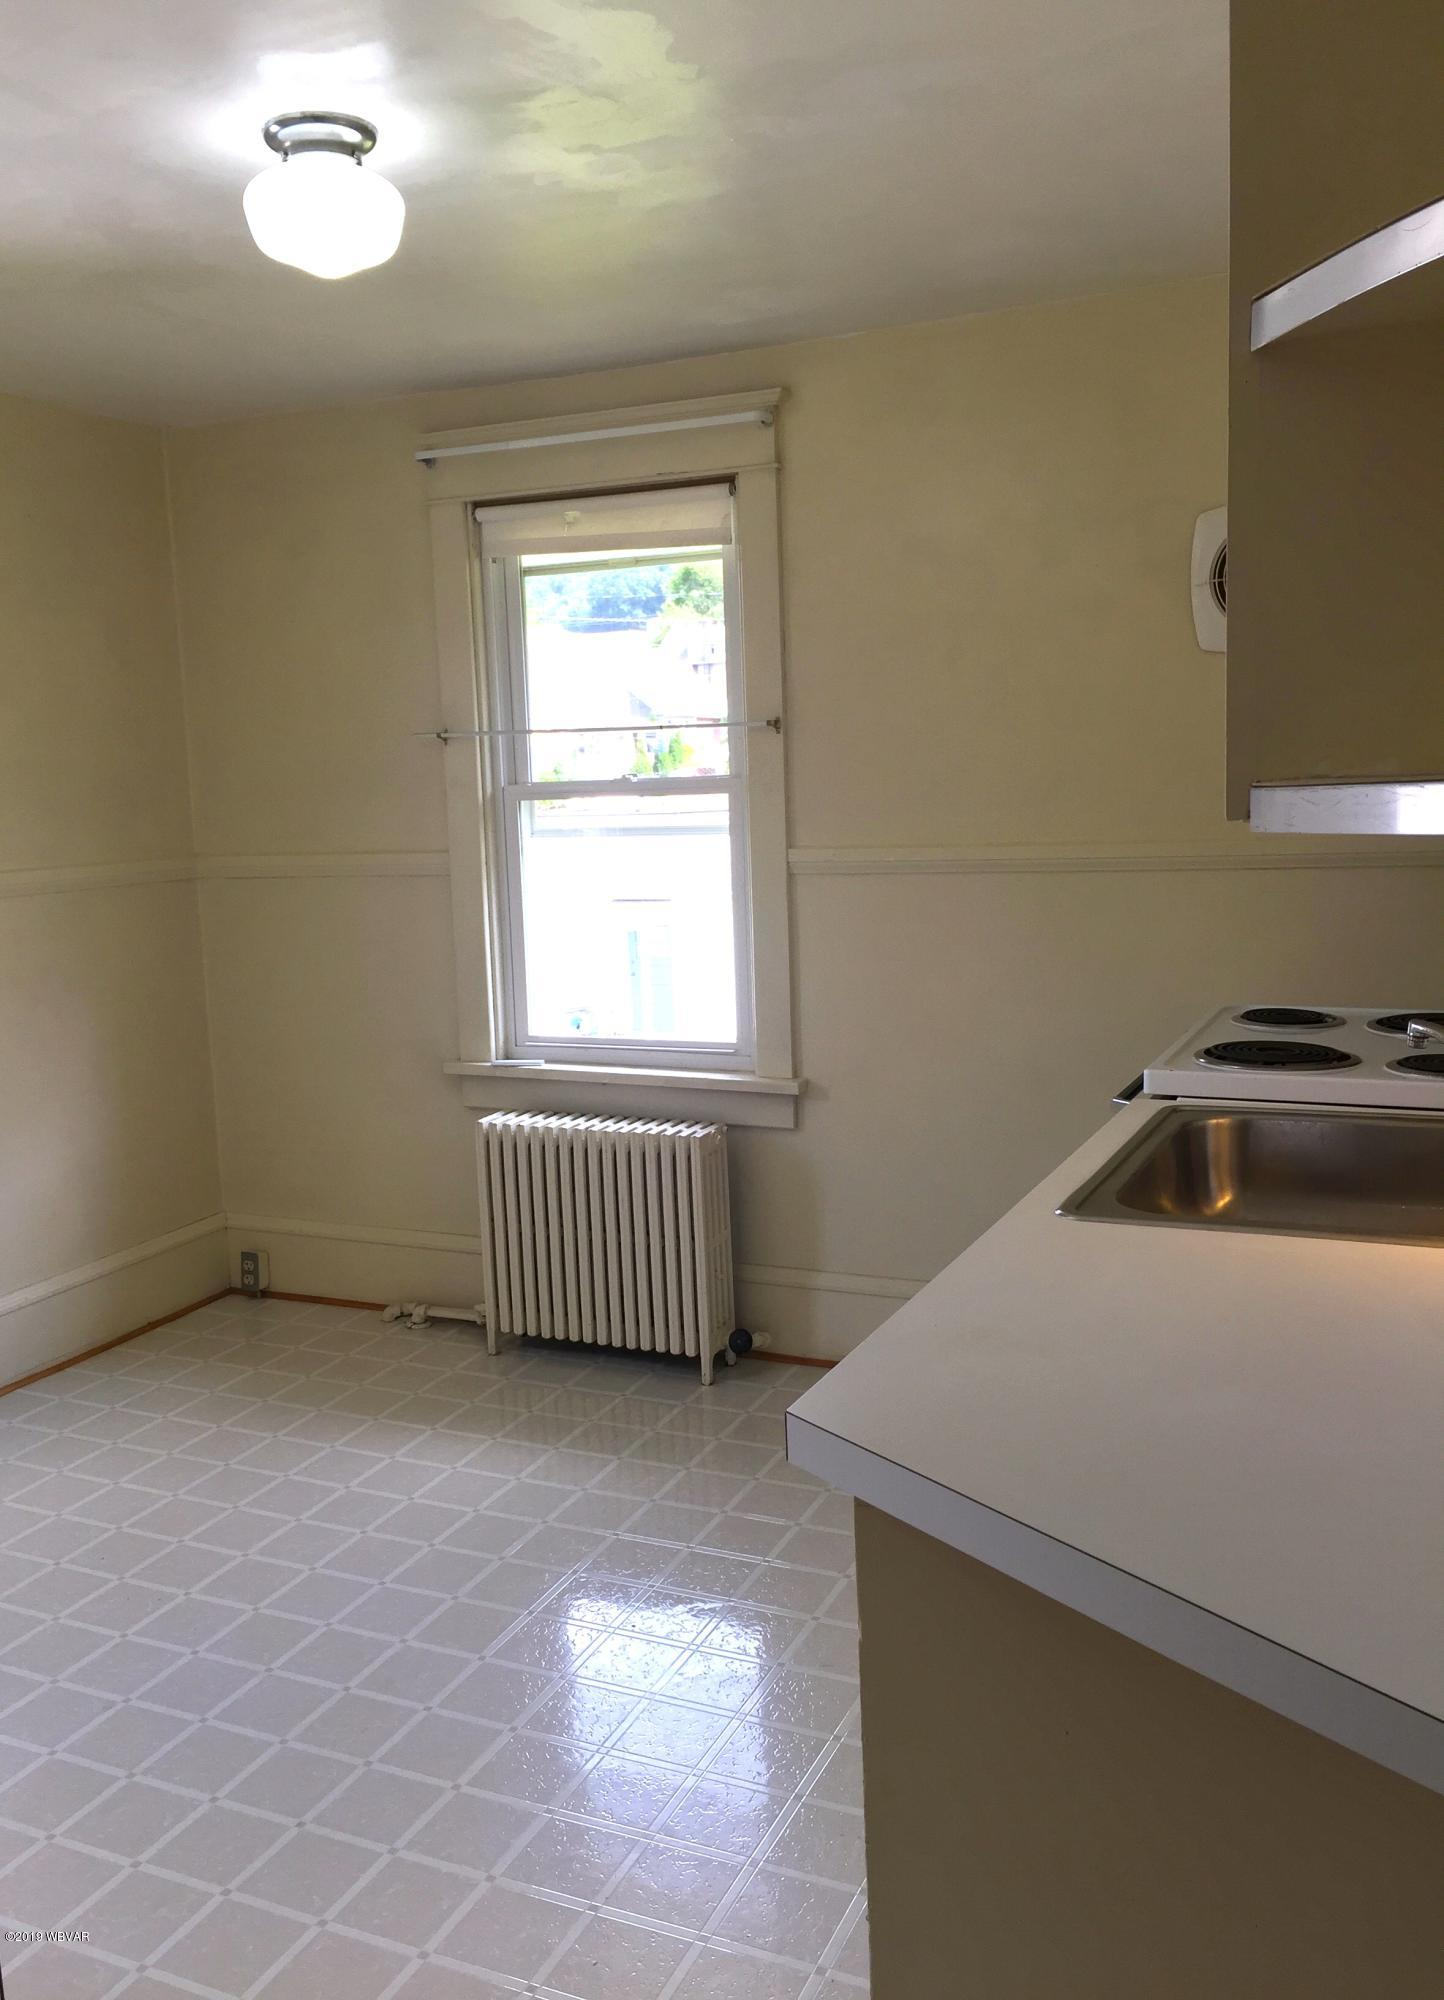 803 CENTRAL AVENUE,S. Williamsport,PA 17702,1 Bedroom Bedrooms,1 BathroomBathrooms,Resid-lease/rental,CENTRAL,WB-86194